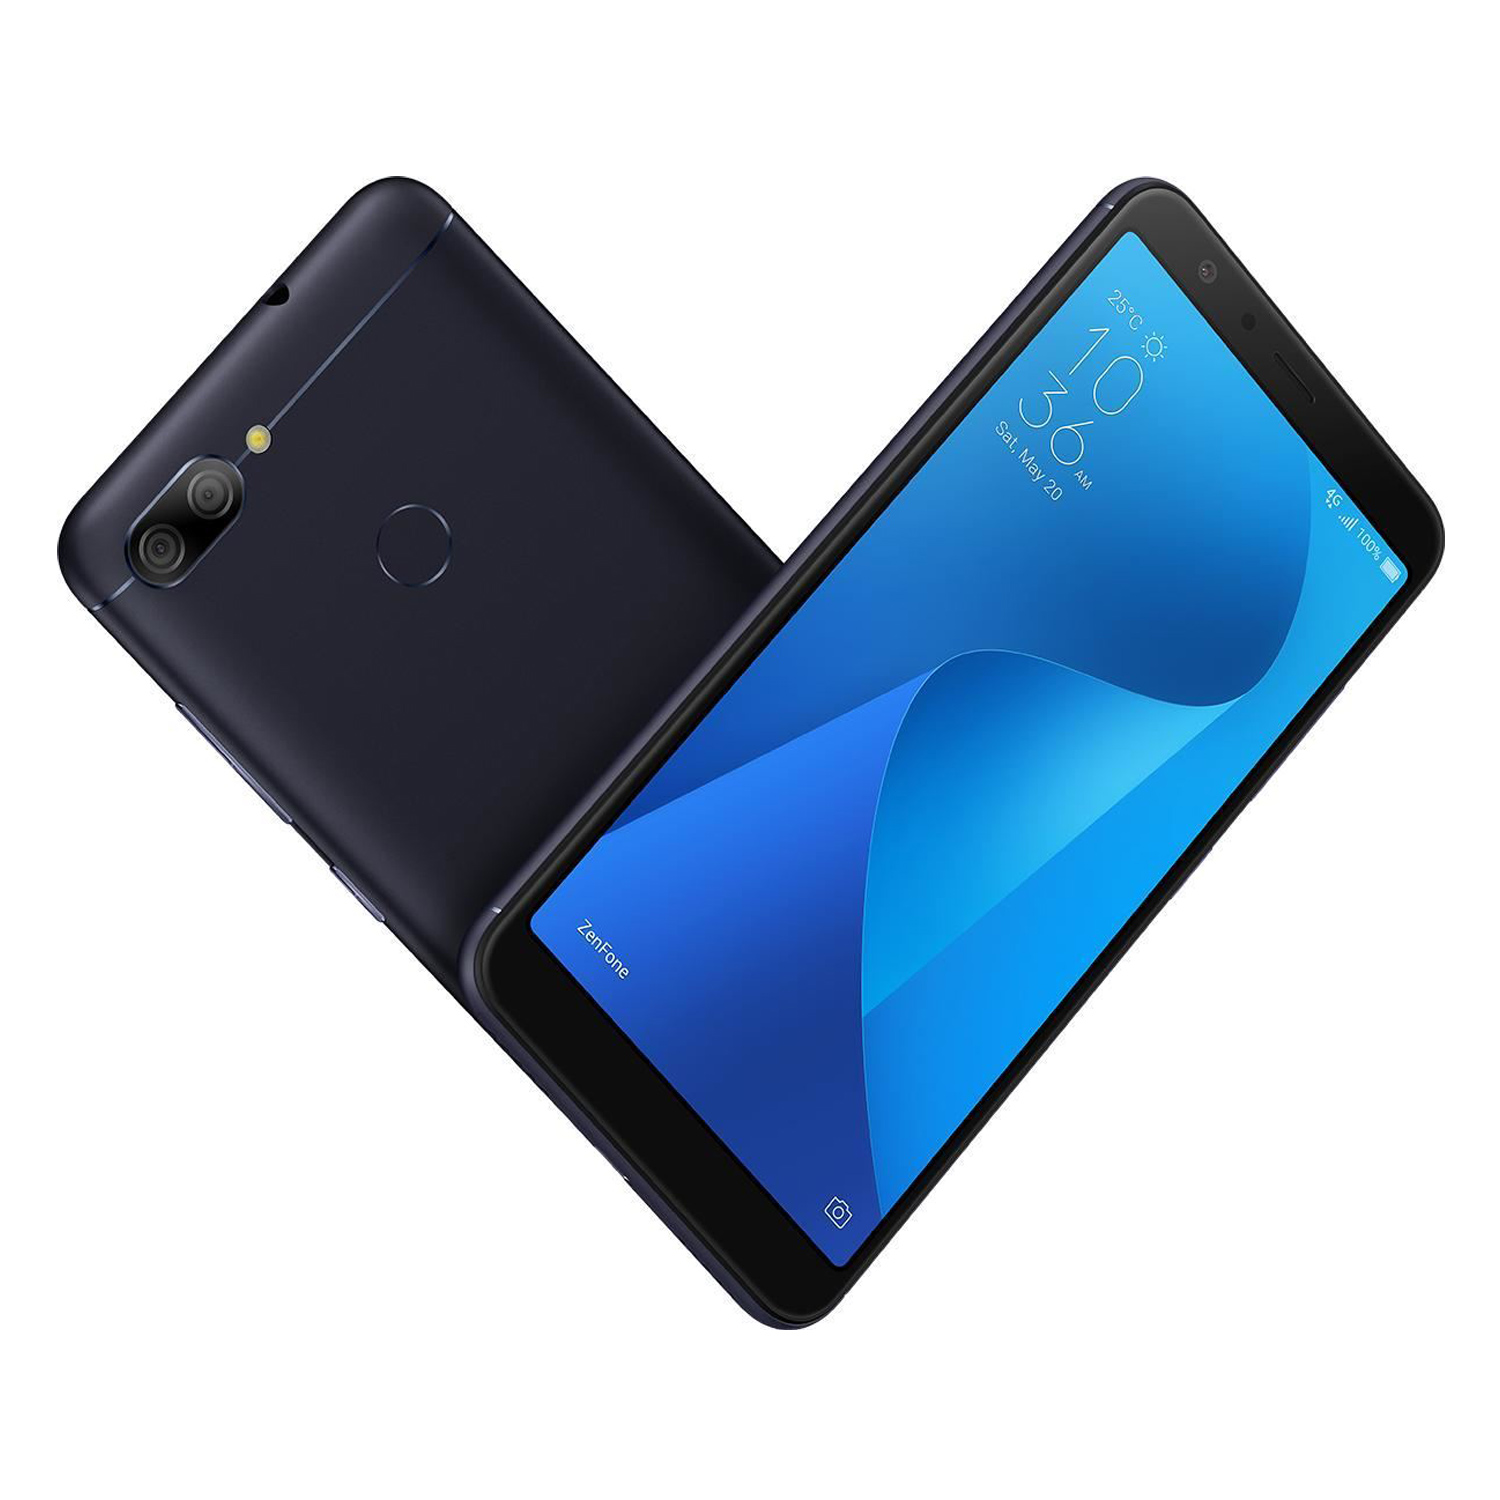 Image result for Asus Zenfone Max Plus M1 ZB570TL